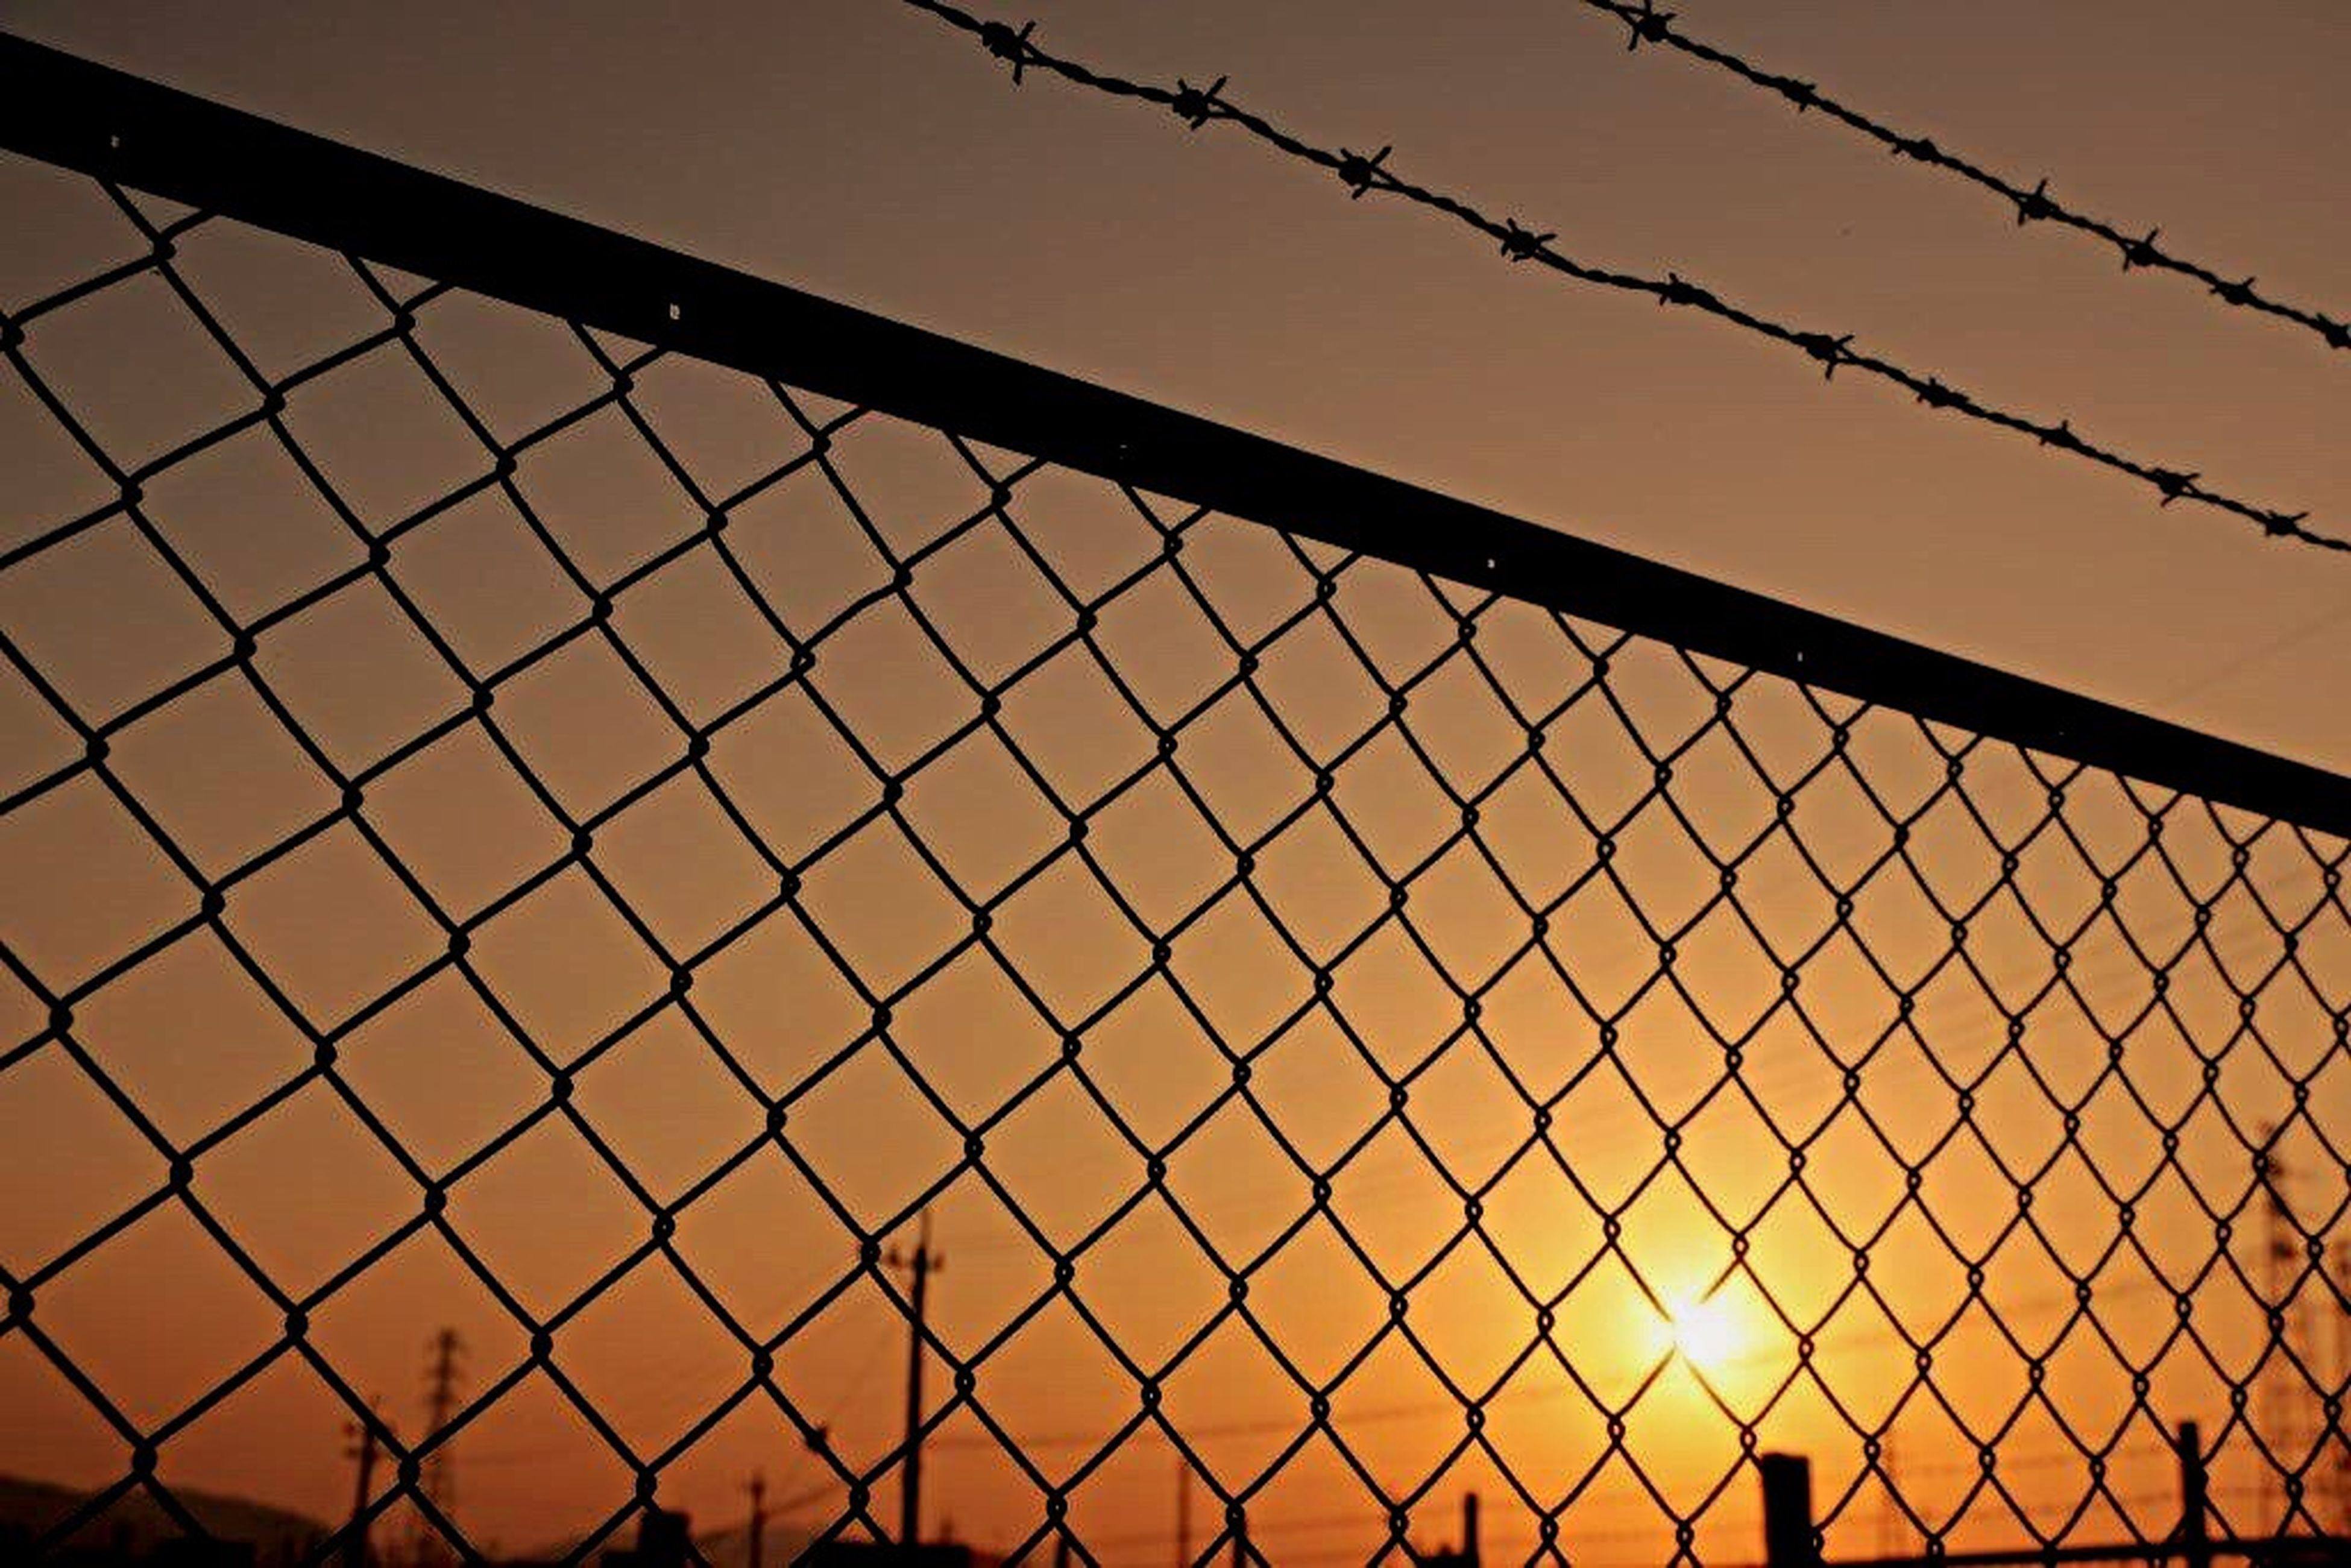 fence, protection, safety, chainlink fence, security, sunset, backgrounds, metal, full frame, bird, pattern, barbed wire, sky, silhouette, outdoors, no people, focus on foreground, orange color, clear sky, metallic